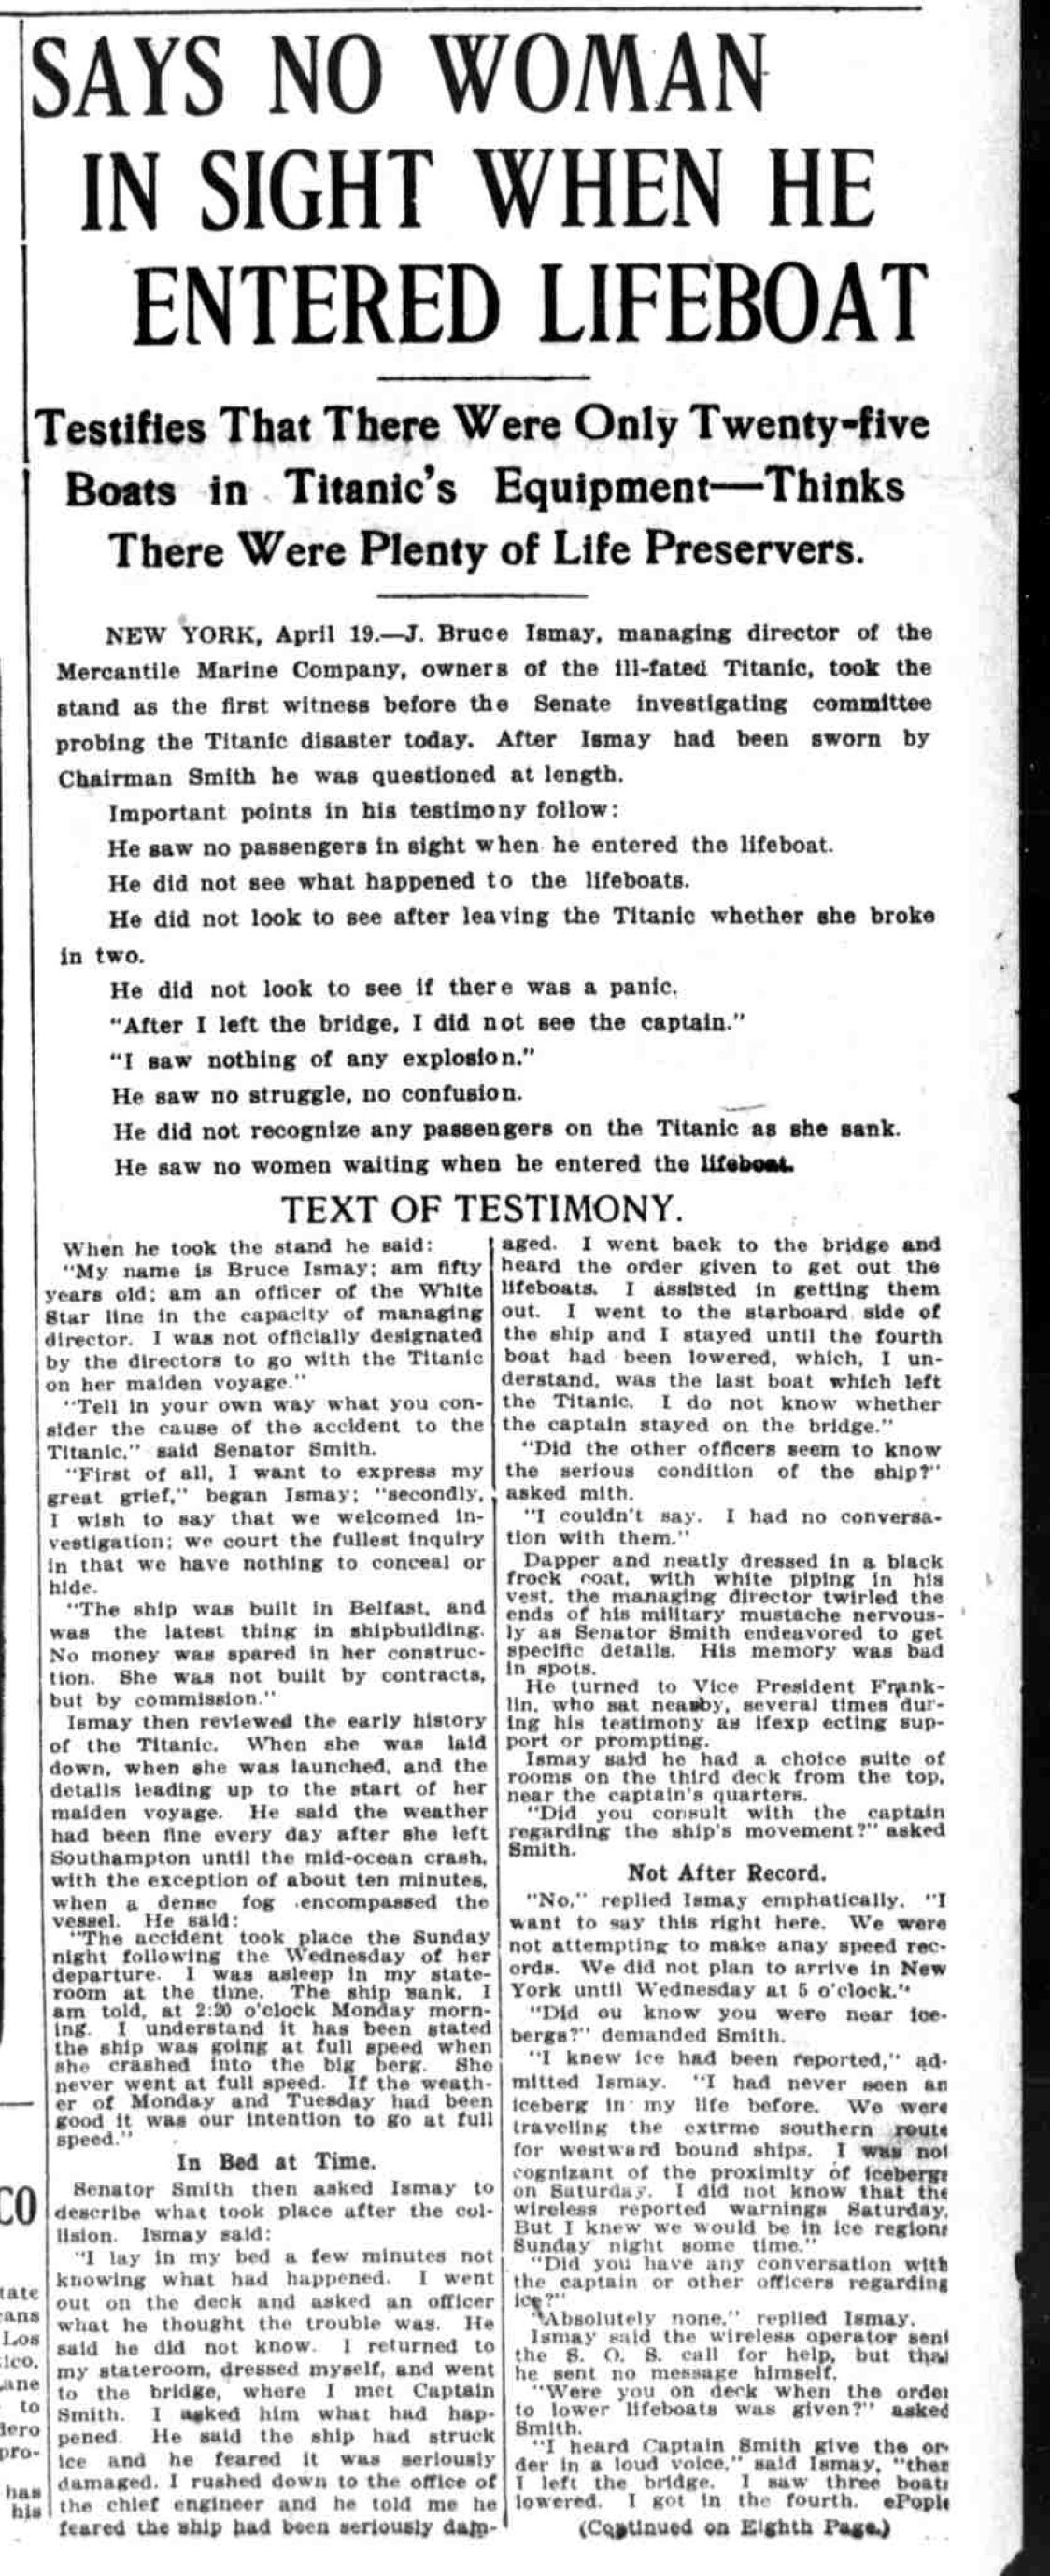 Titanic Newspaper Article 1912-04-19 The Washington Times, April 19, 1912, LAST EDITION, Page 1